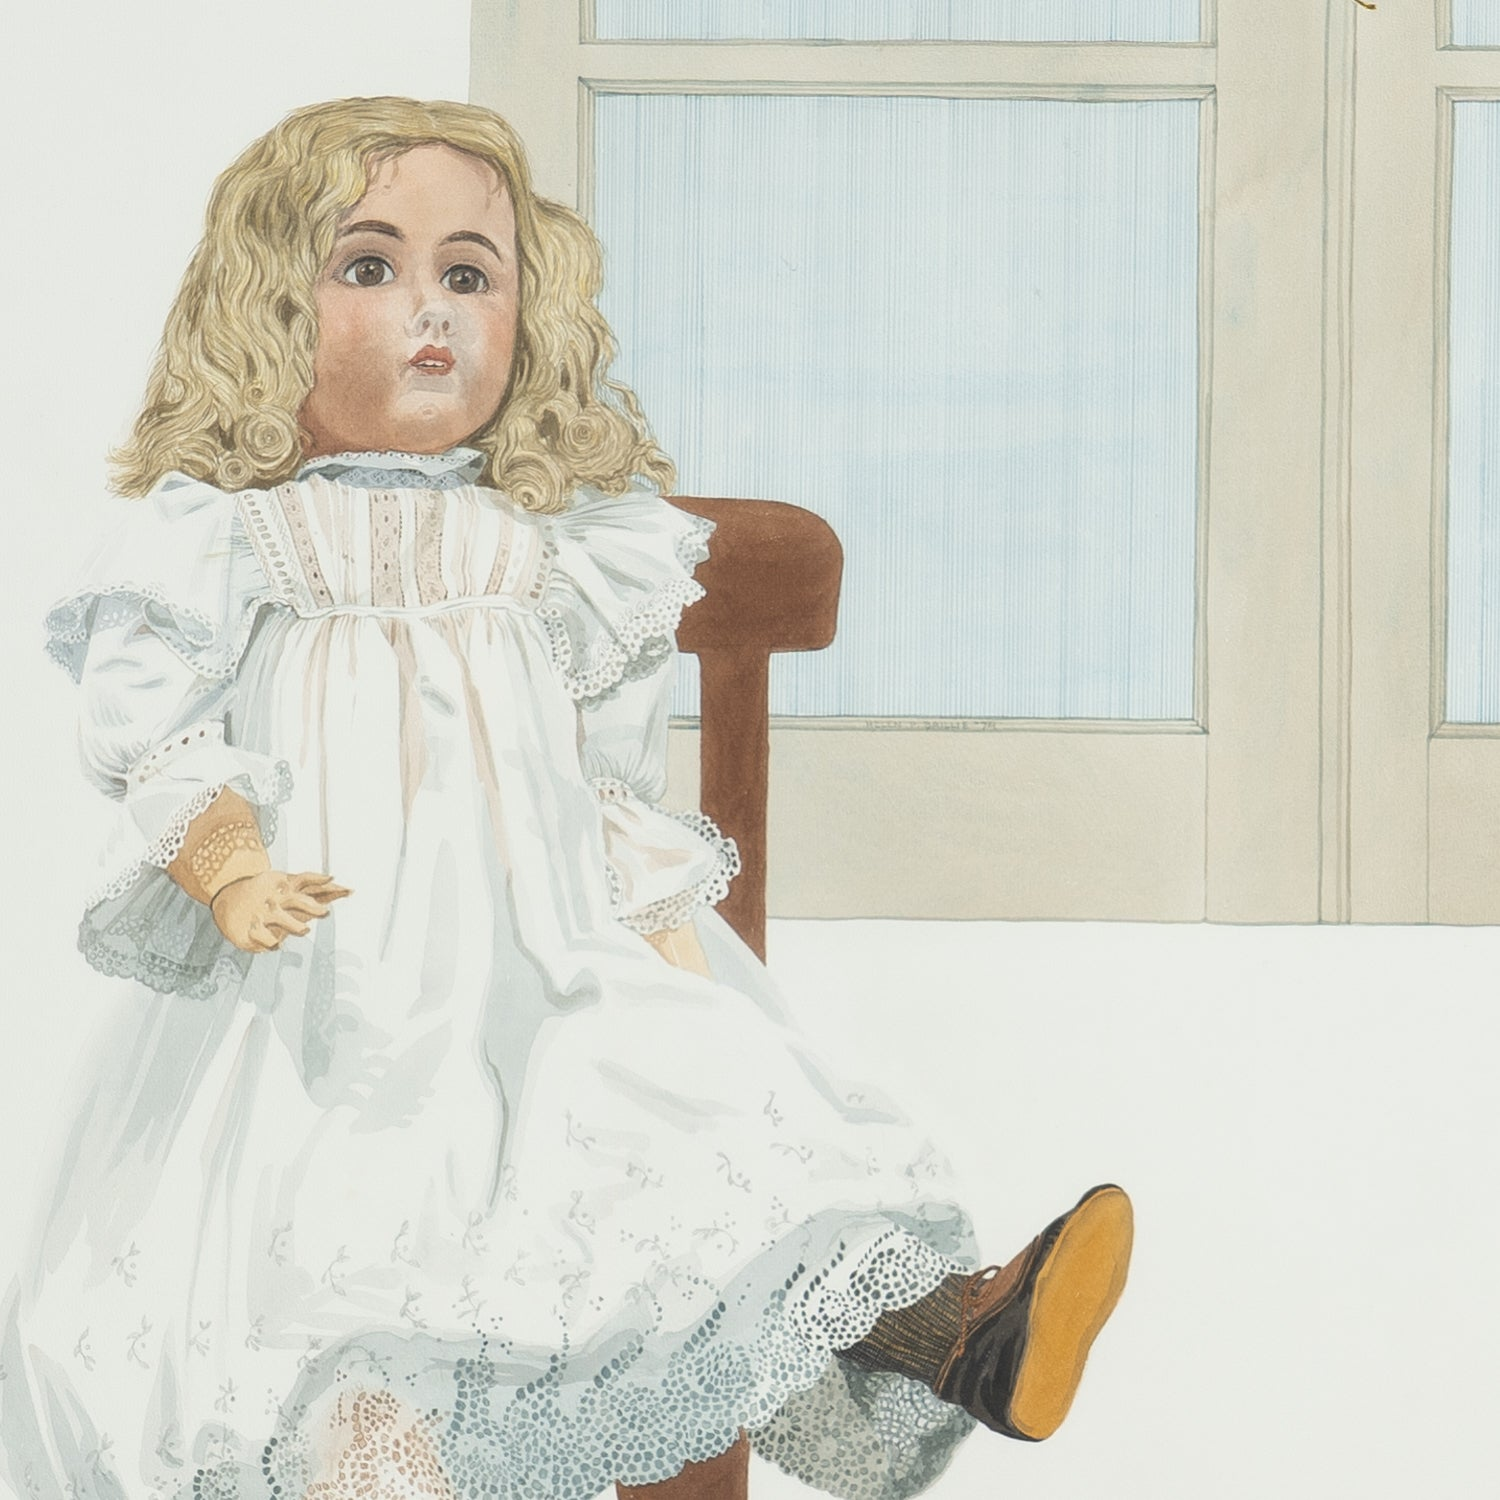 Water Colour of Doll by Helen P. Baillie '74